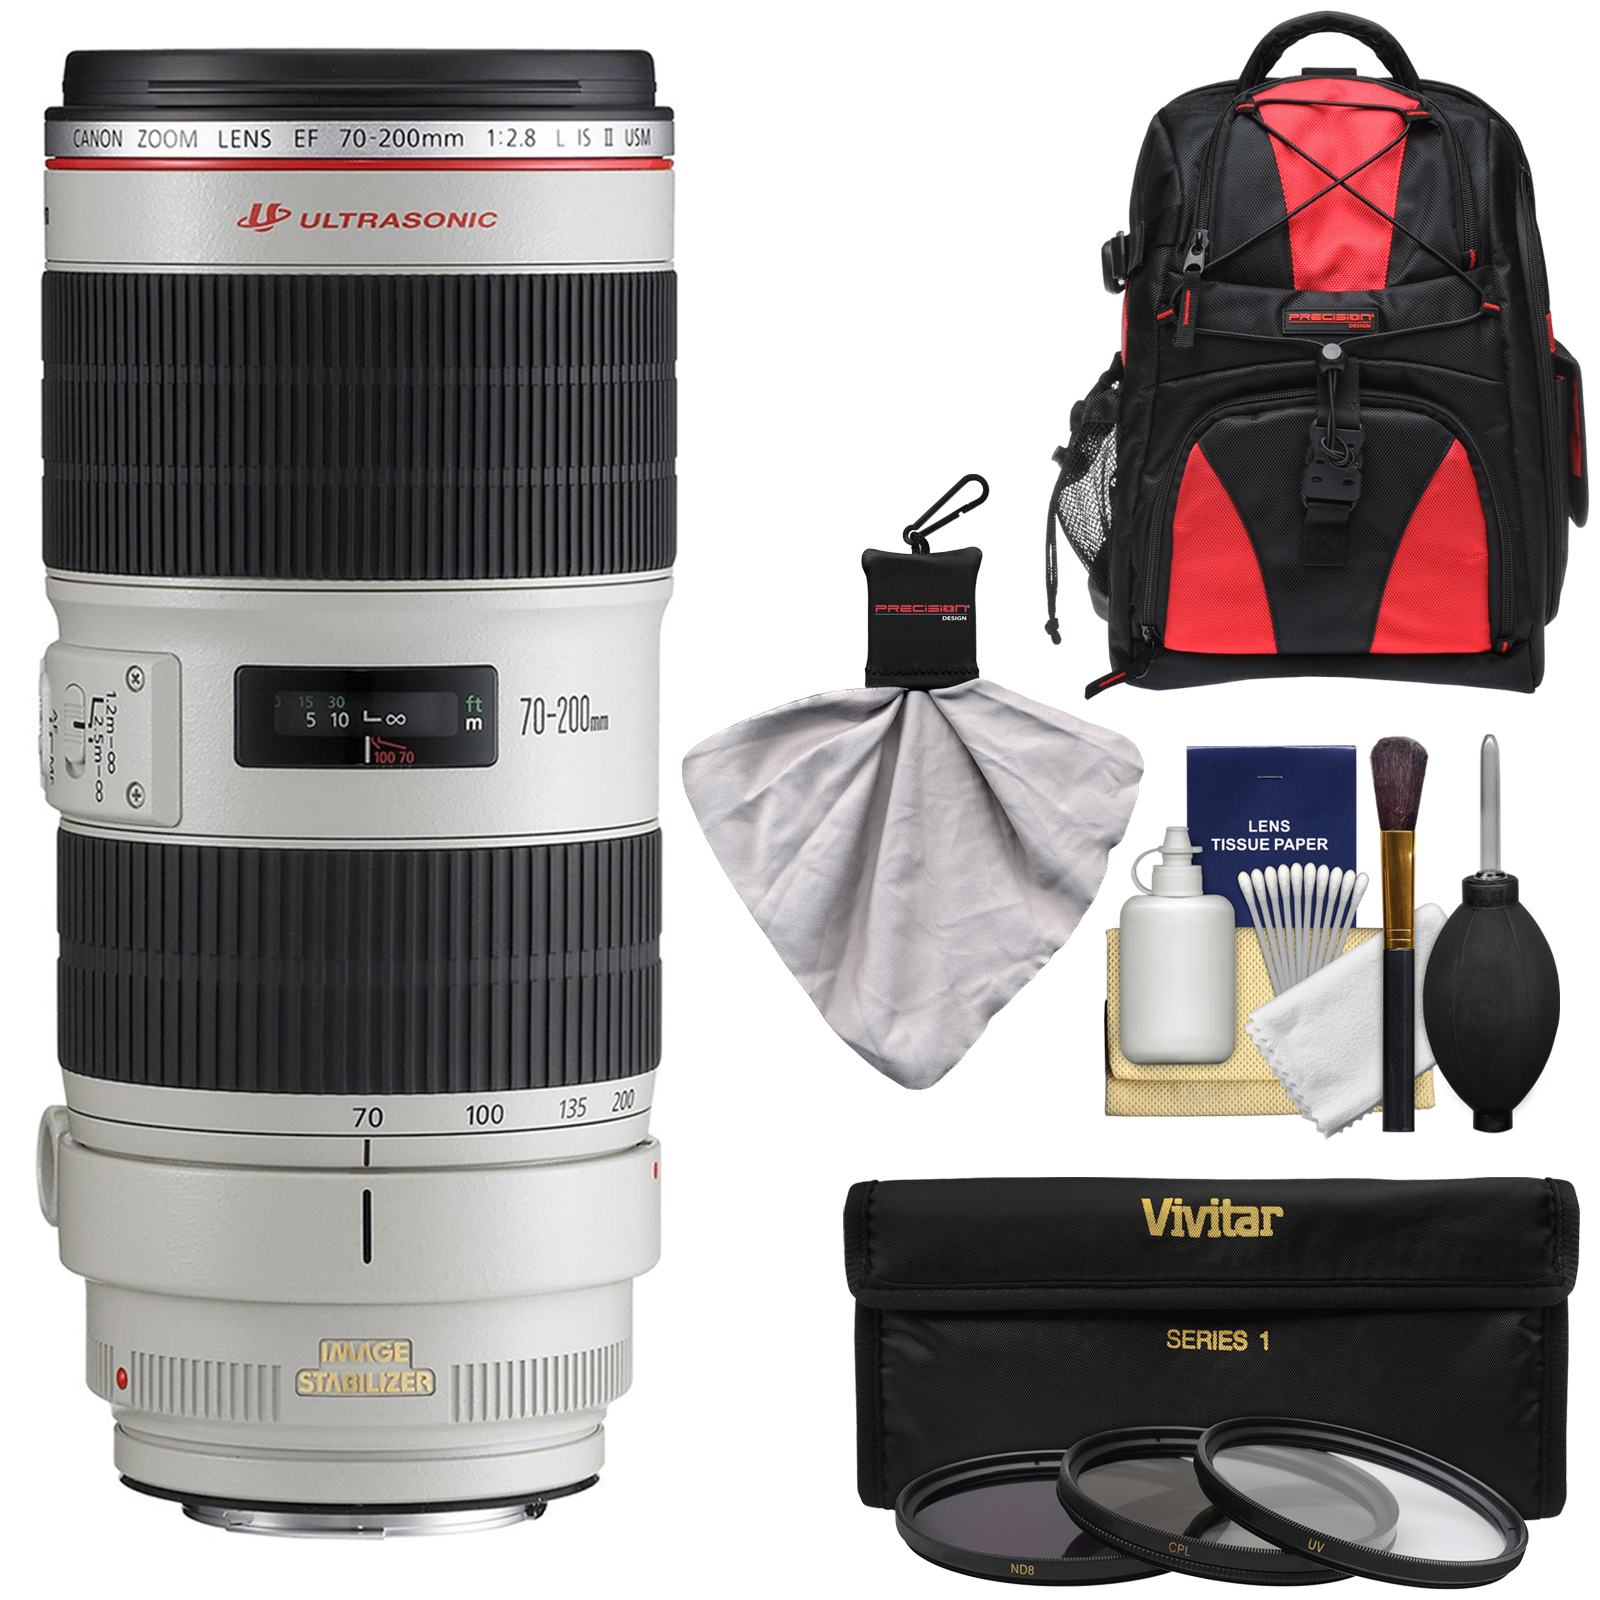 Click here to buy Canon EF 70-200mm f 2.8 L IS II USM Zoom Lens with Backpack + 3 Filters + Kit for EOS 6D, 70D, 7D, 5DS, 5D... by Canon.